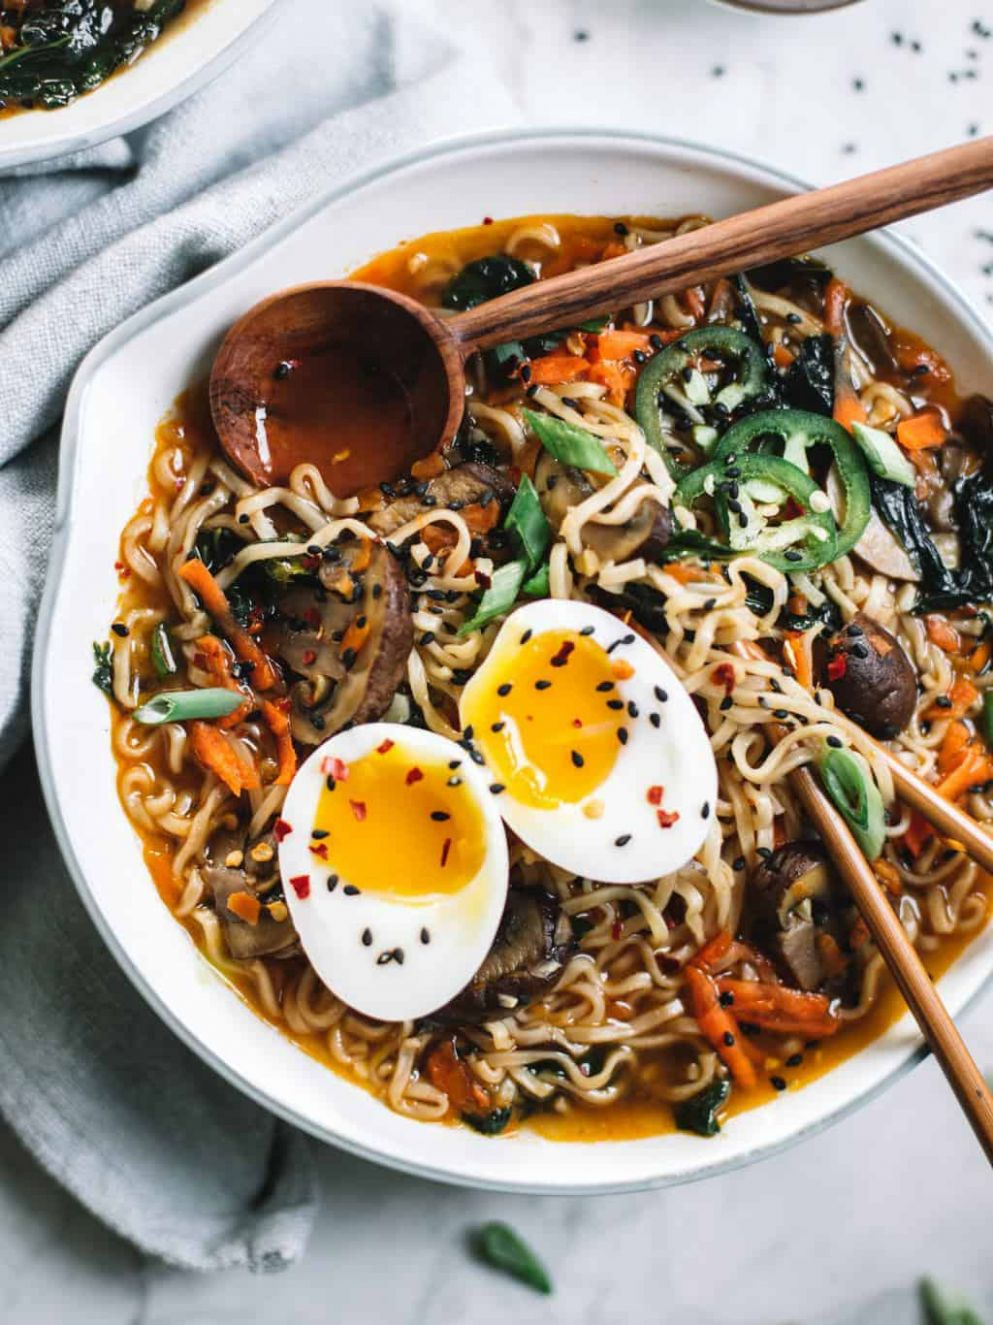 Easy Homemade Healthy Ramen Bowl - College Housewife - Healthy Recipes Ramen Noodles